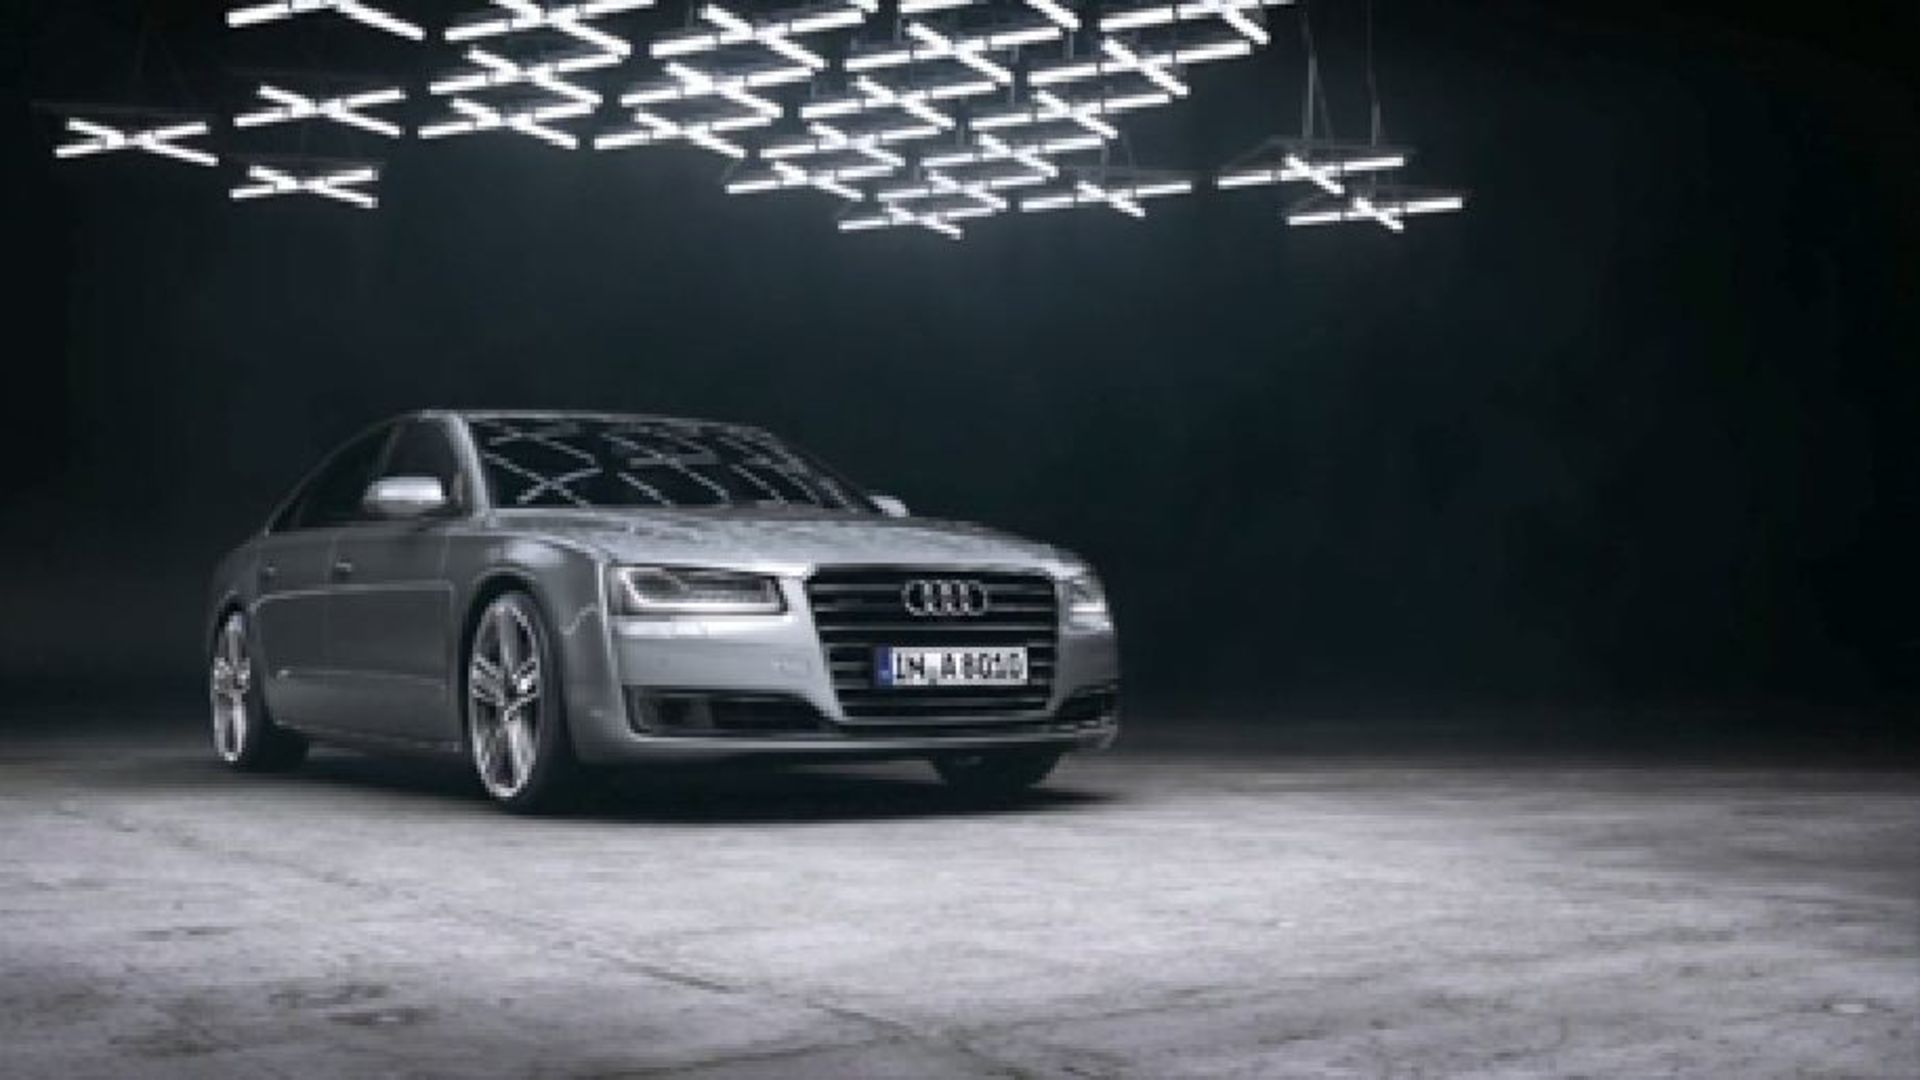 The Audi A8 with Matrix LED headlights